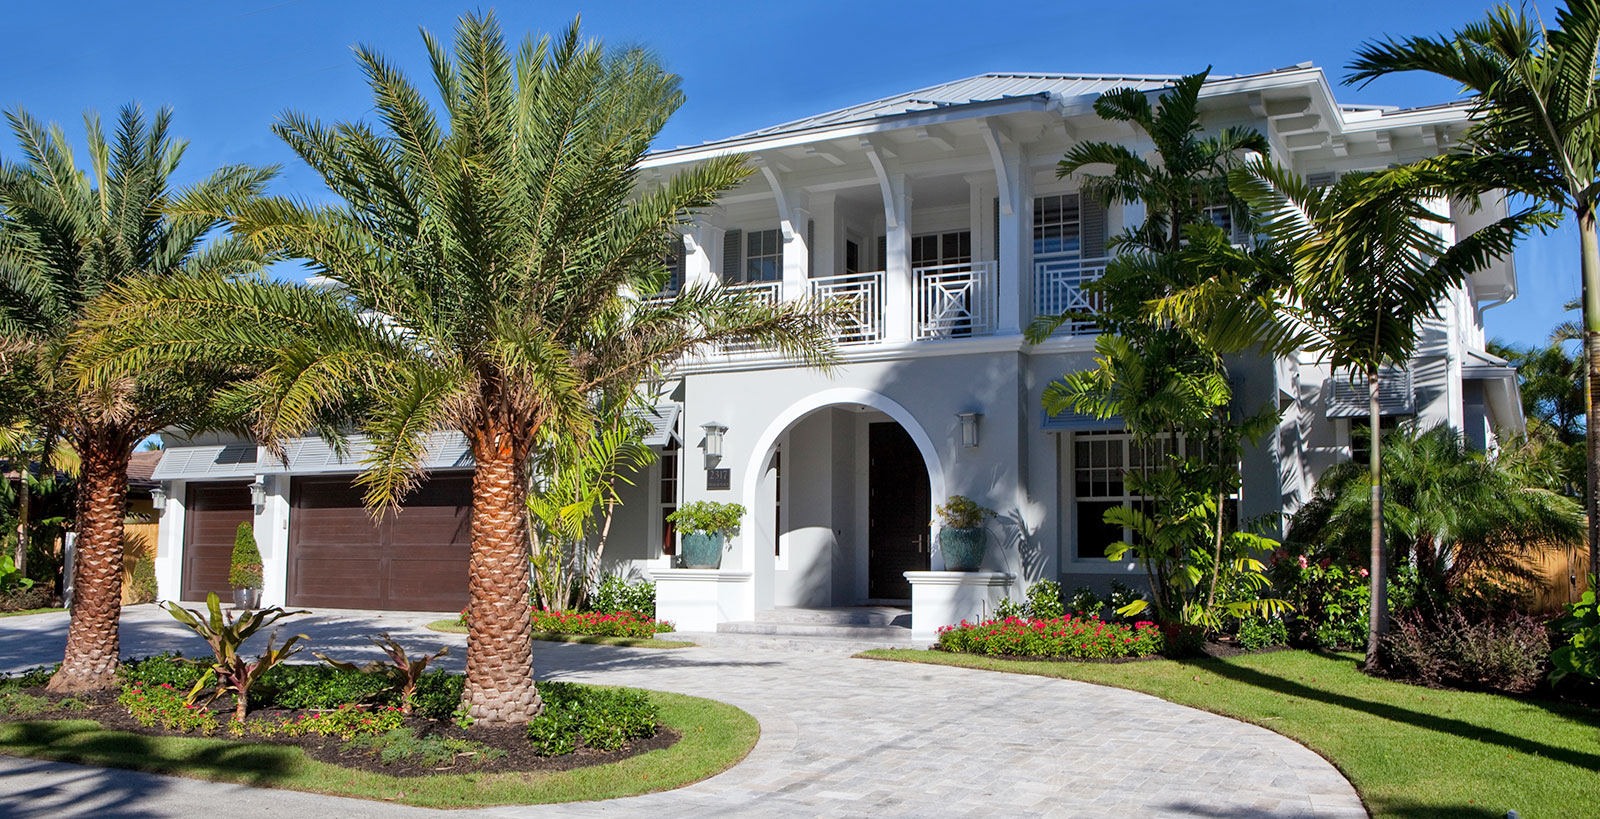 Fort Lauderdale Architect House Photo